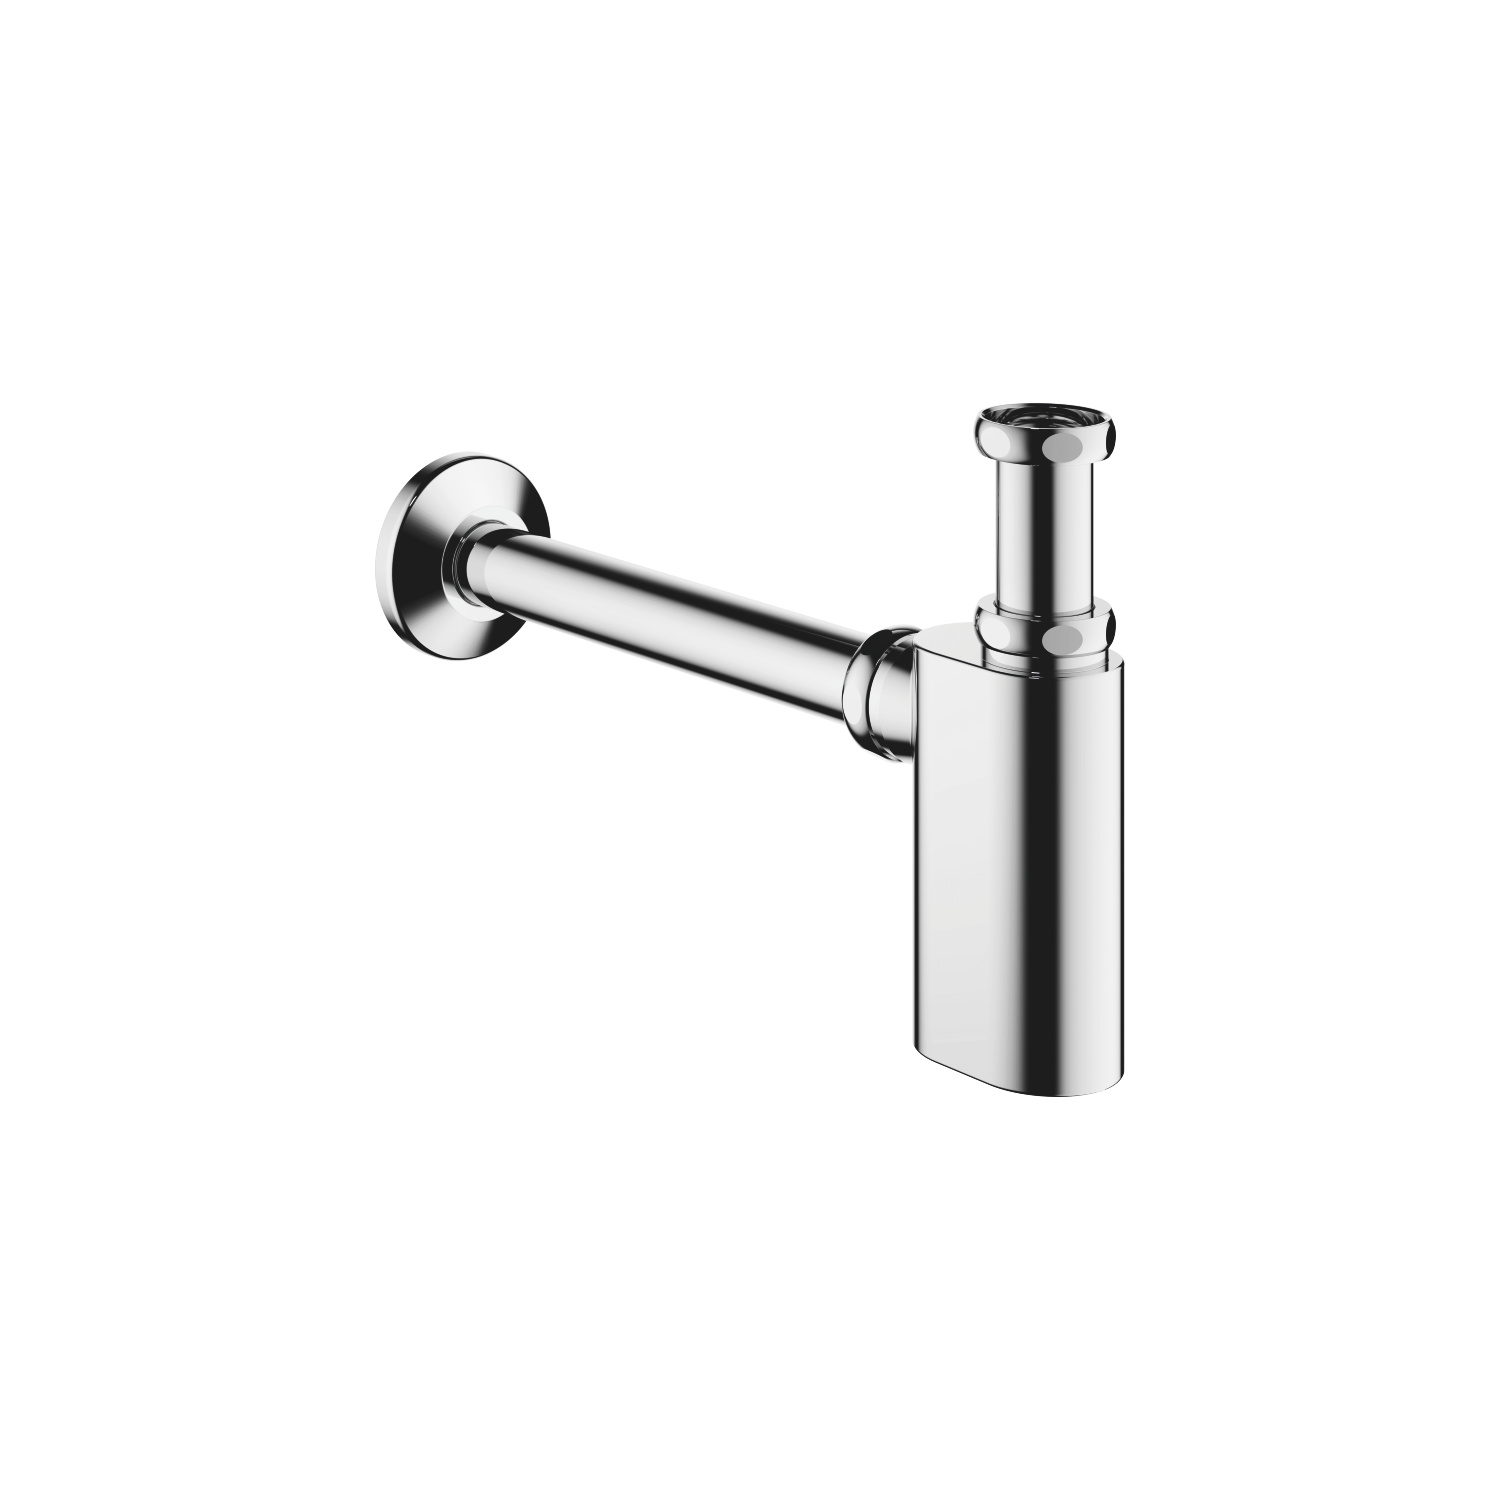 "Lavatory siphon 1 1/4"" - polished chrome"